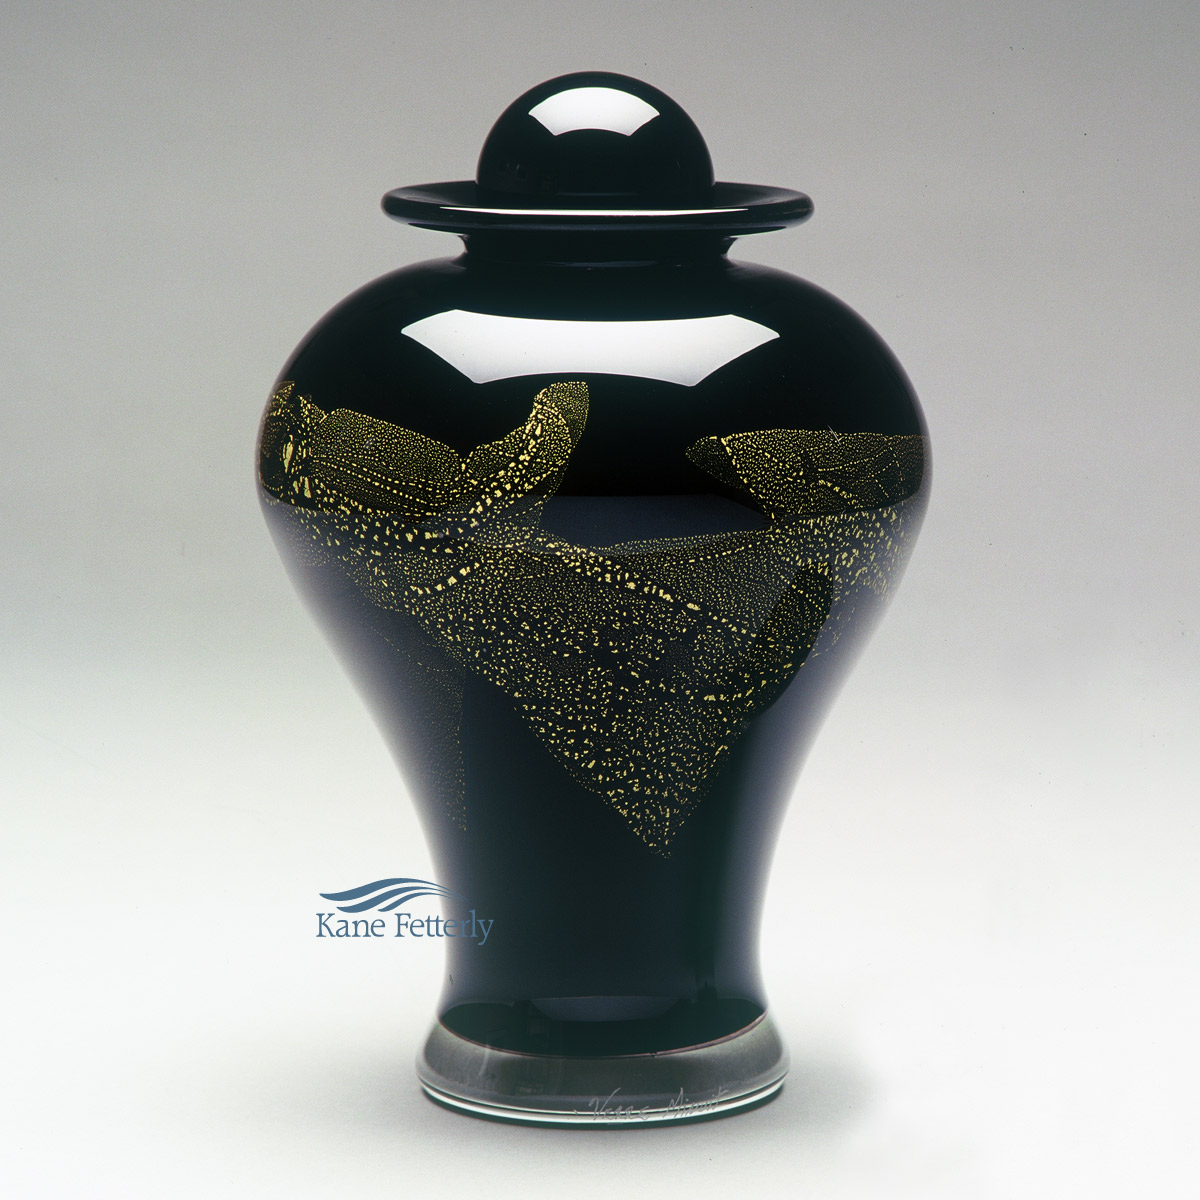 U8220BG Hand-blown glass urn